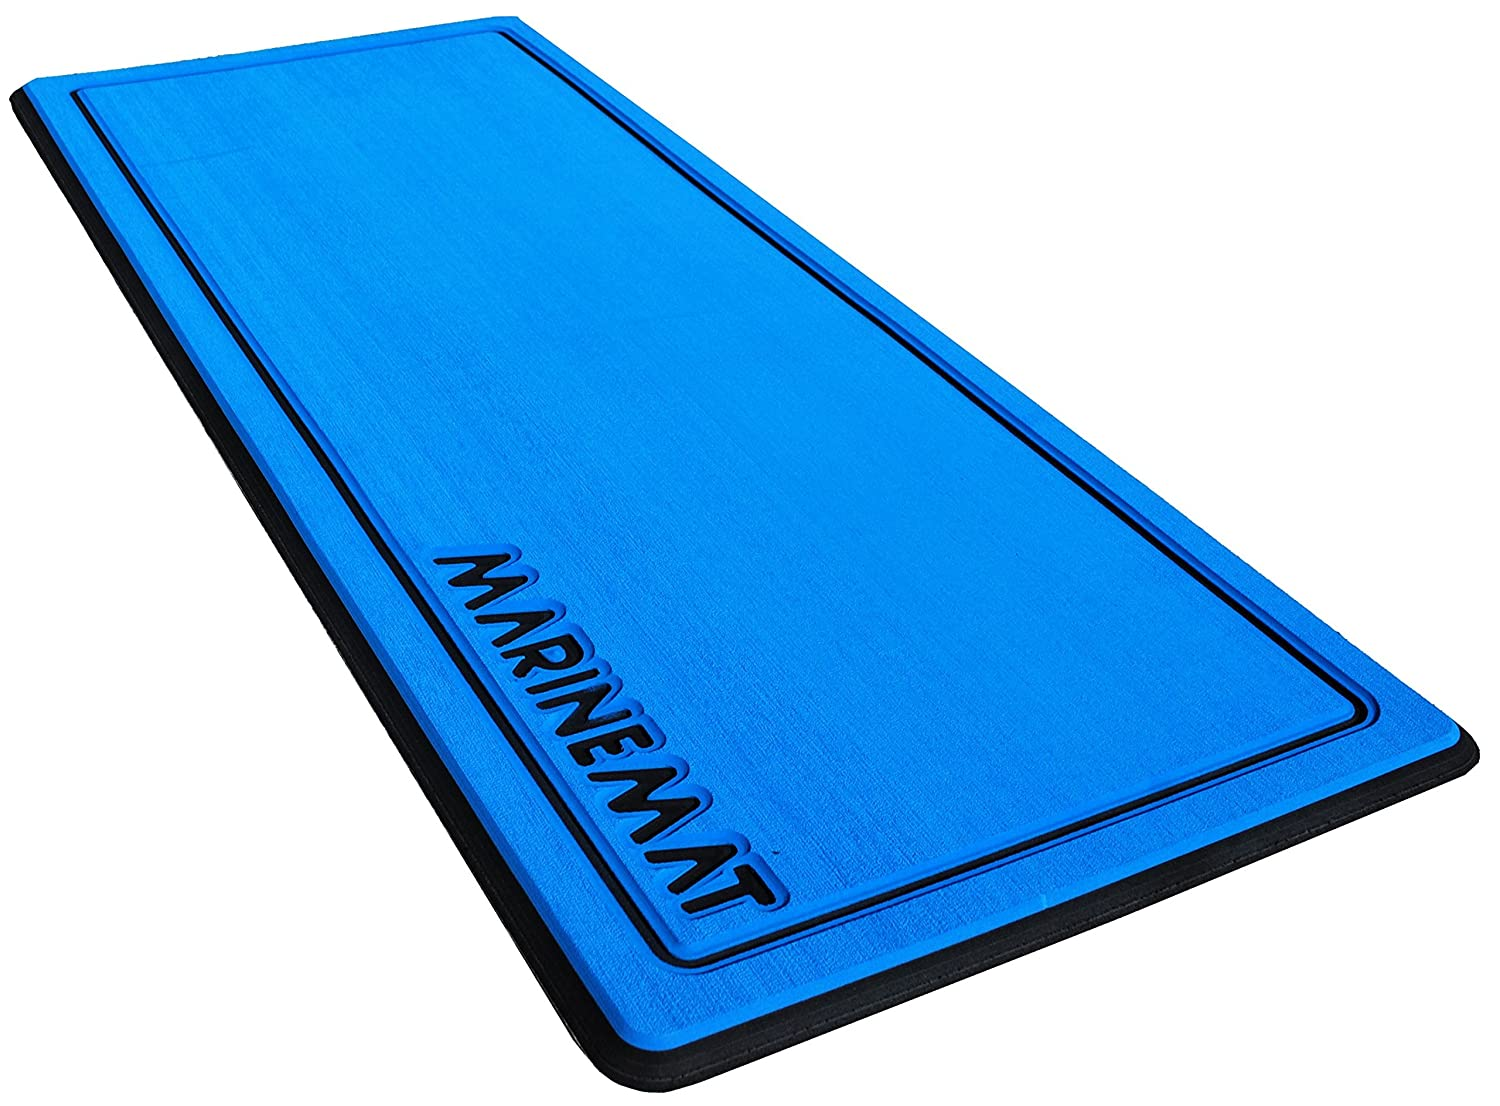 Anti-Fatigue Boat Mat, Helm Pad by Marine Mat